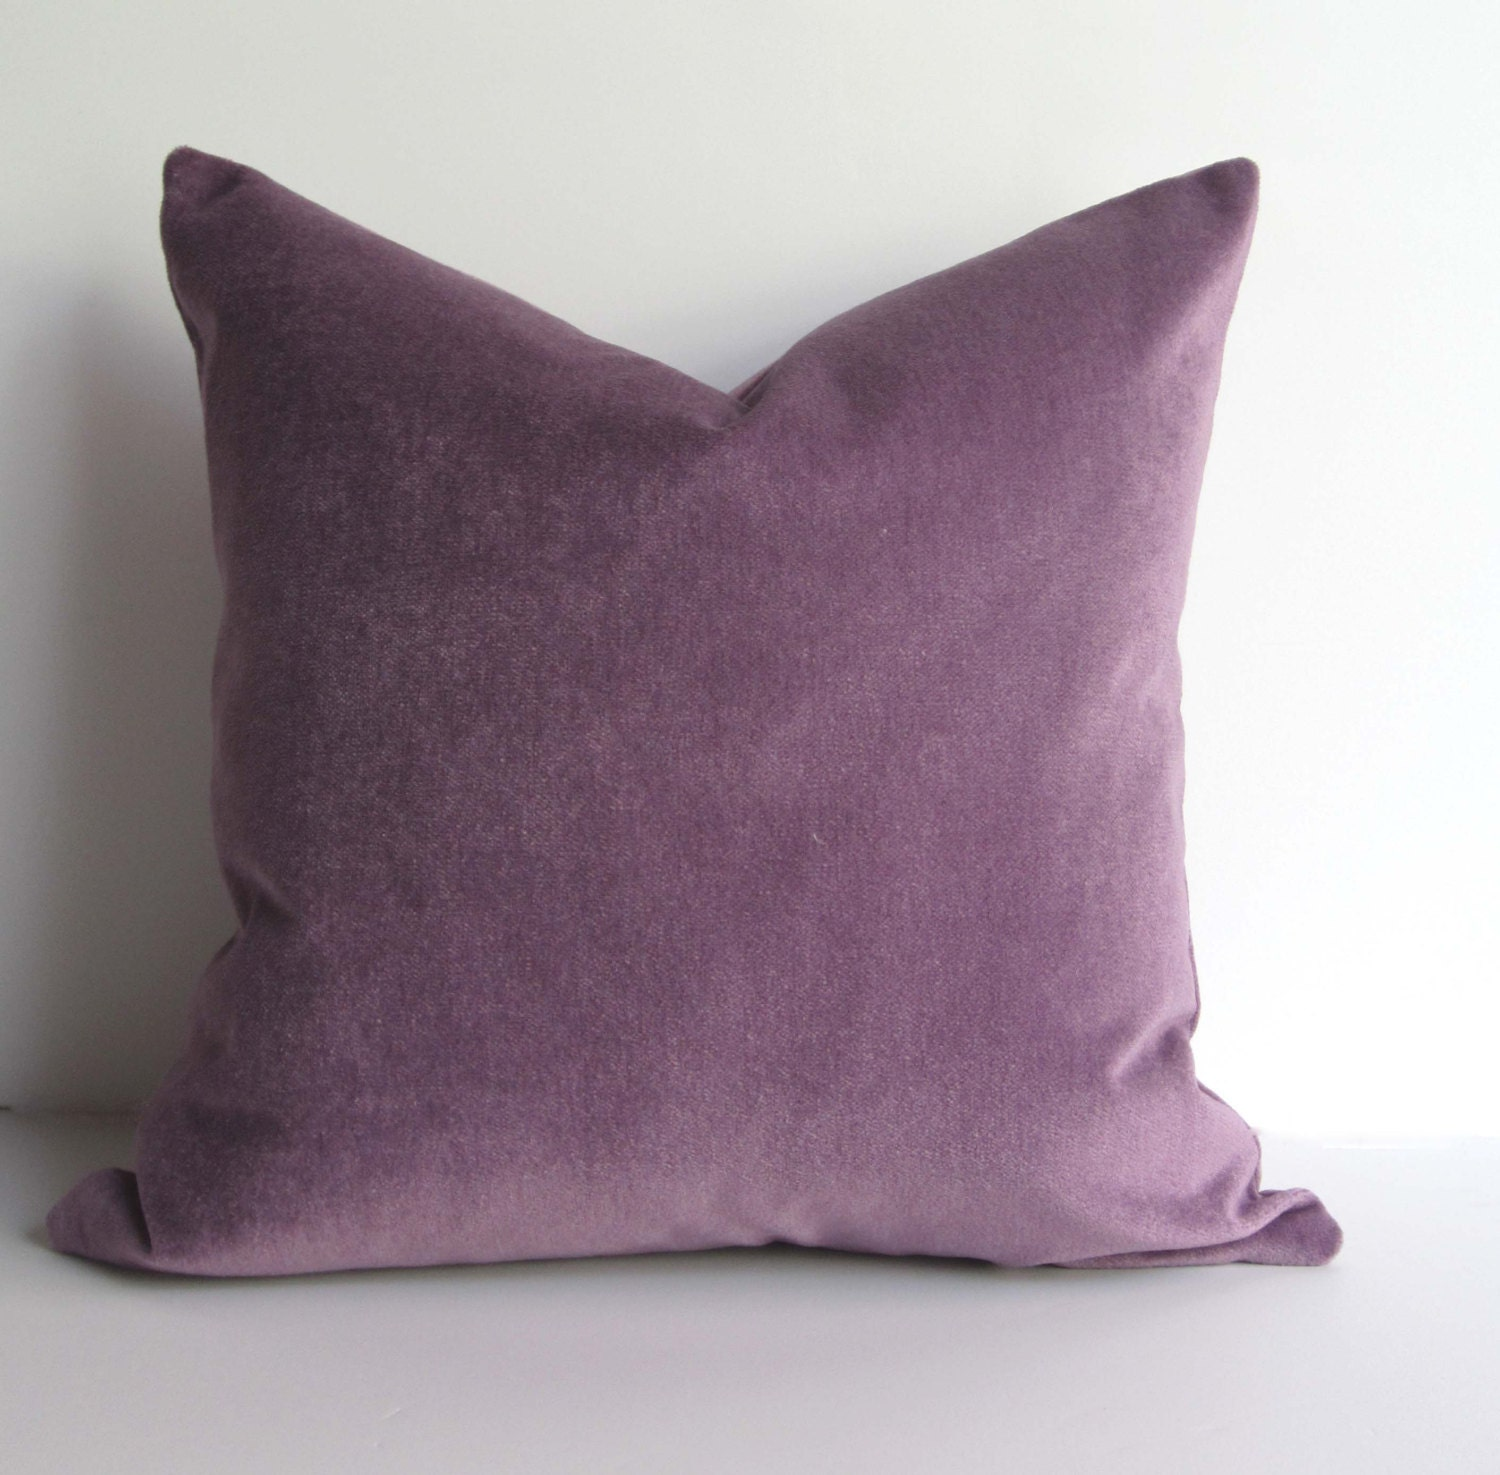 Decorative Pillow Lilac : Lilac Velvet Pillow Decorative Pillow Cover 20 inch